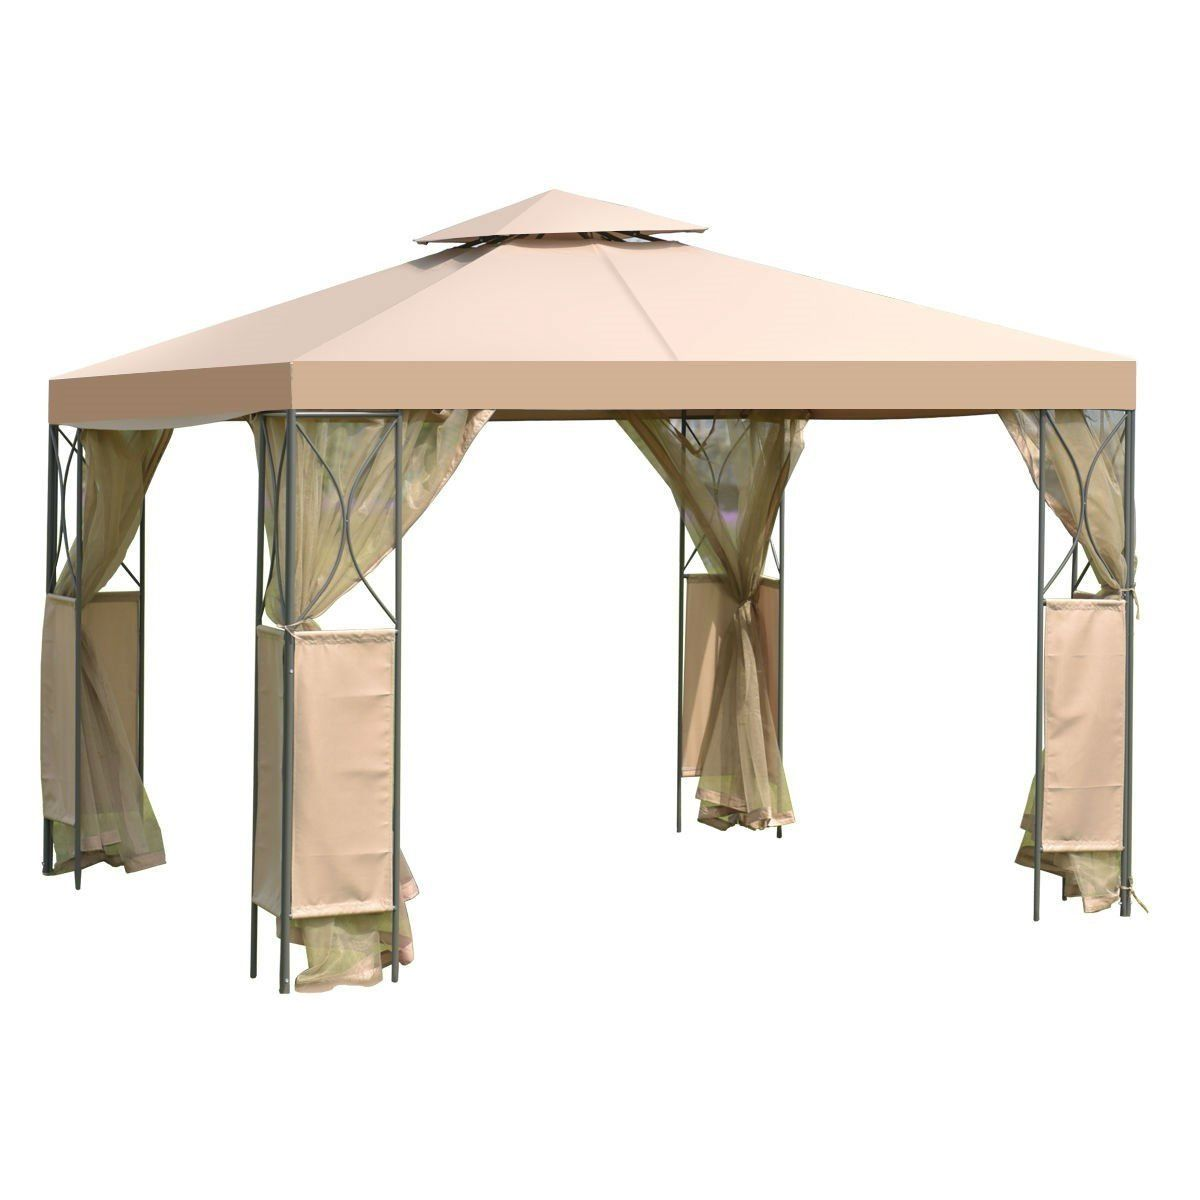 10 X 10 Ft Gazebo With Coffee Canopy And Mosquito Netting Mesh Sidewalls In 2020 Gazebo Canopy Steel Gazebo Gazebo